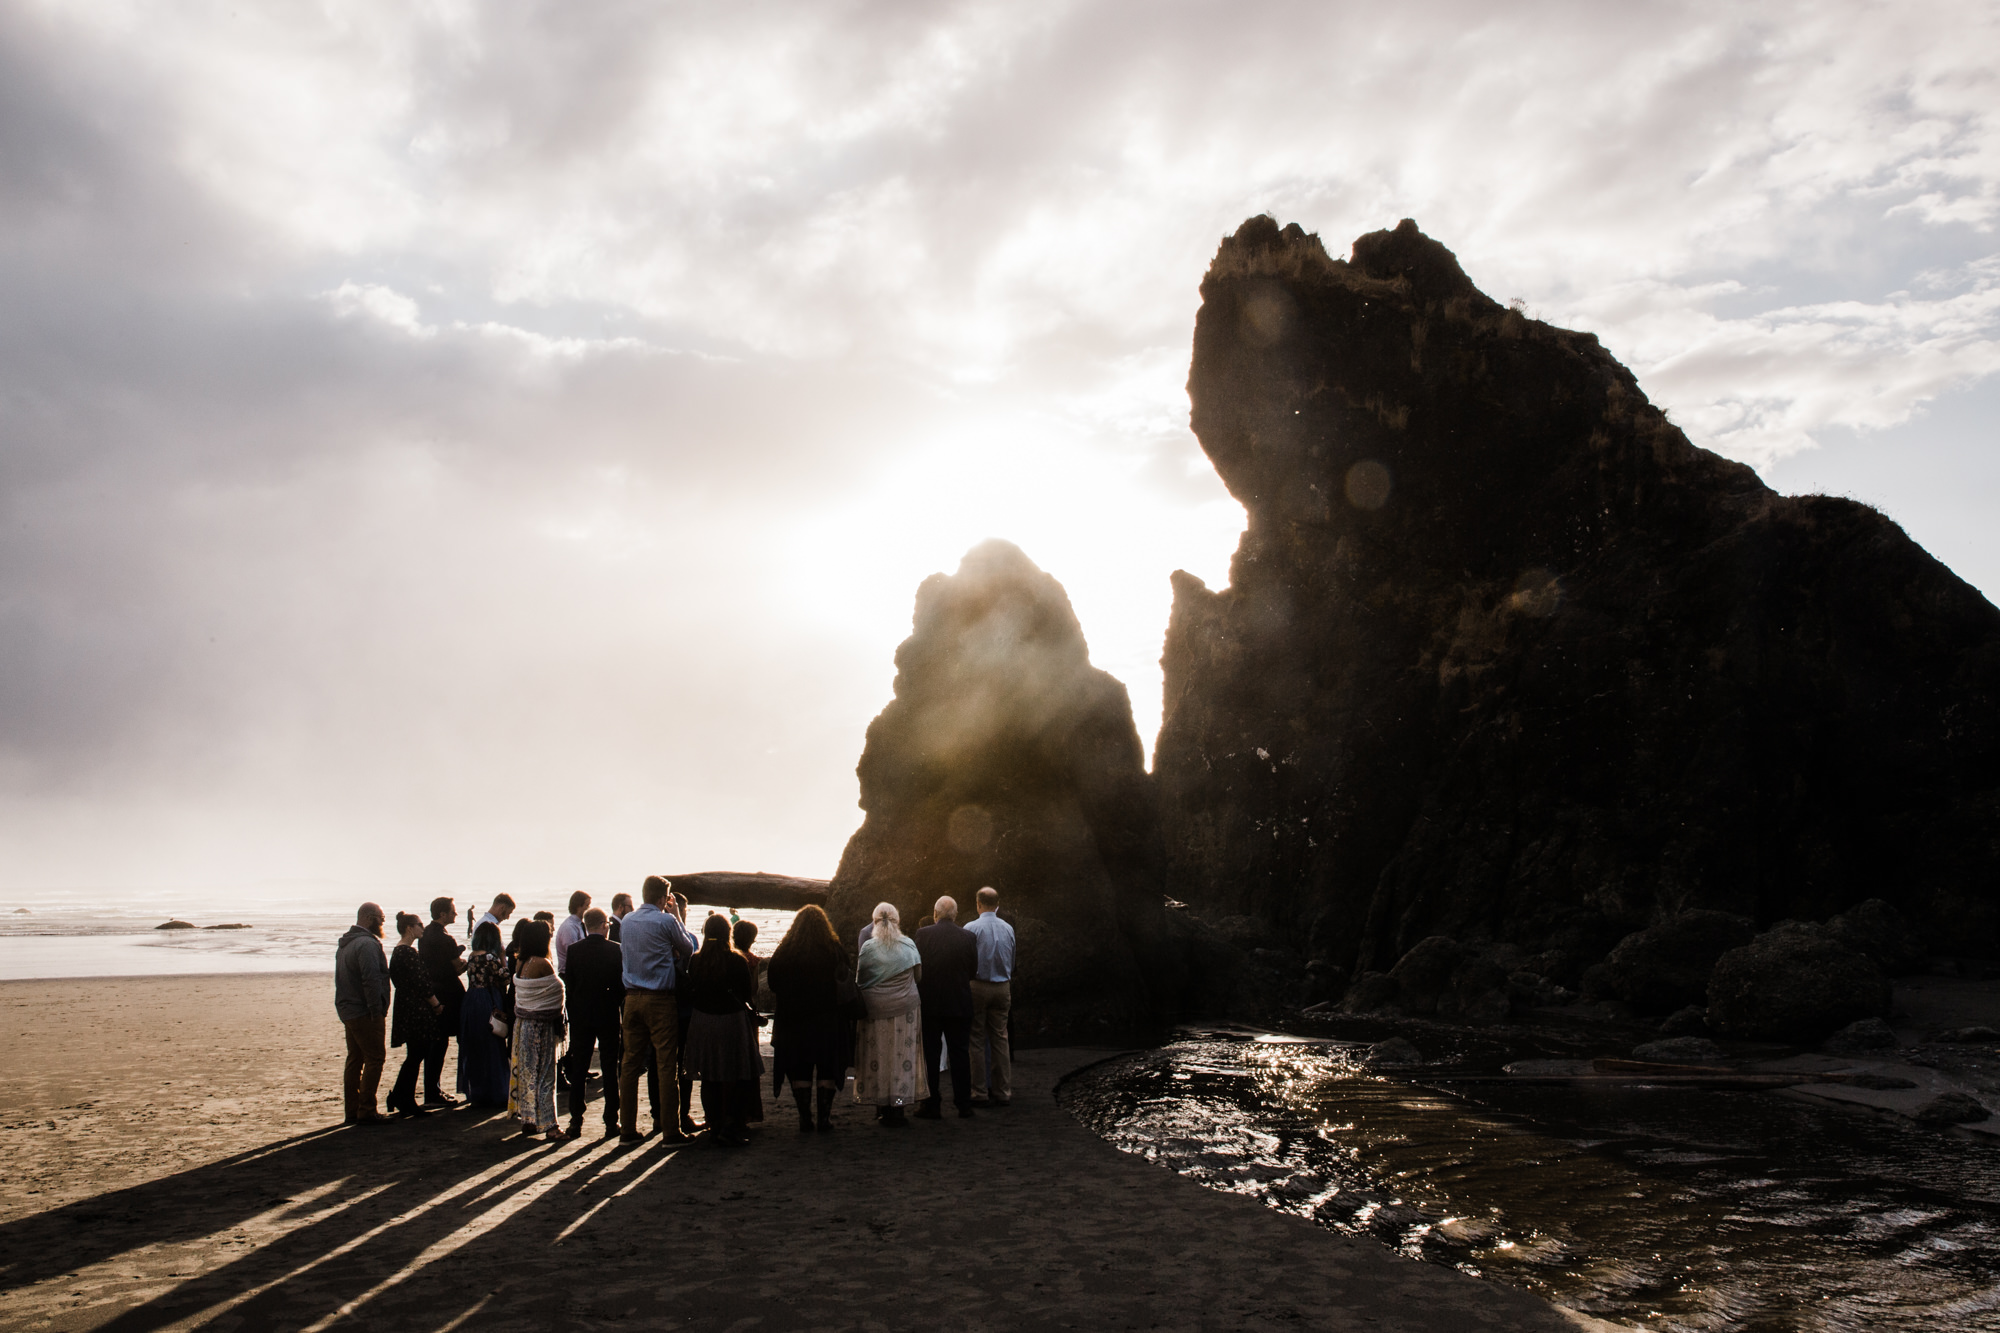 ruby beach intimate wedding in olympic national park | destination adventure wedding photographers | the hearnes adventure photography | www.thehearnes.com